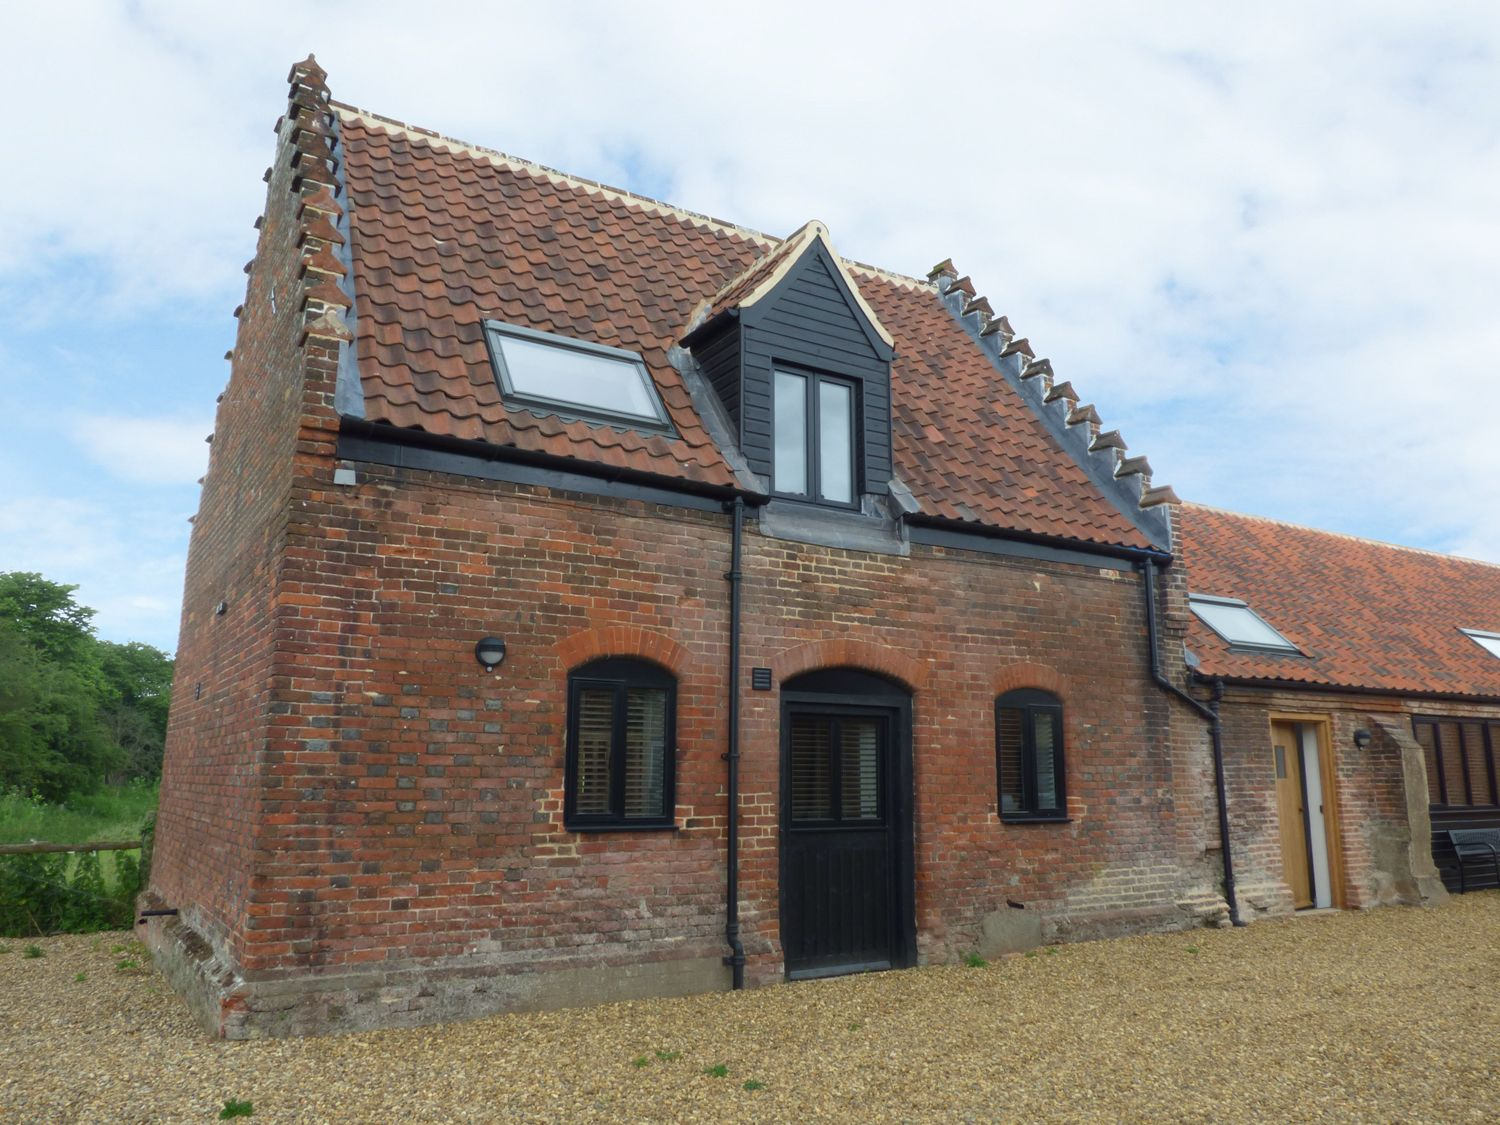 Holiday Cottages in Norfolk: Tricker's Cottage, Moreton on the Hill | Sykes Cottages